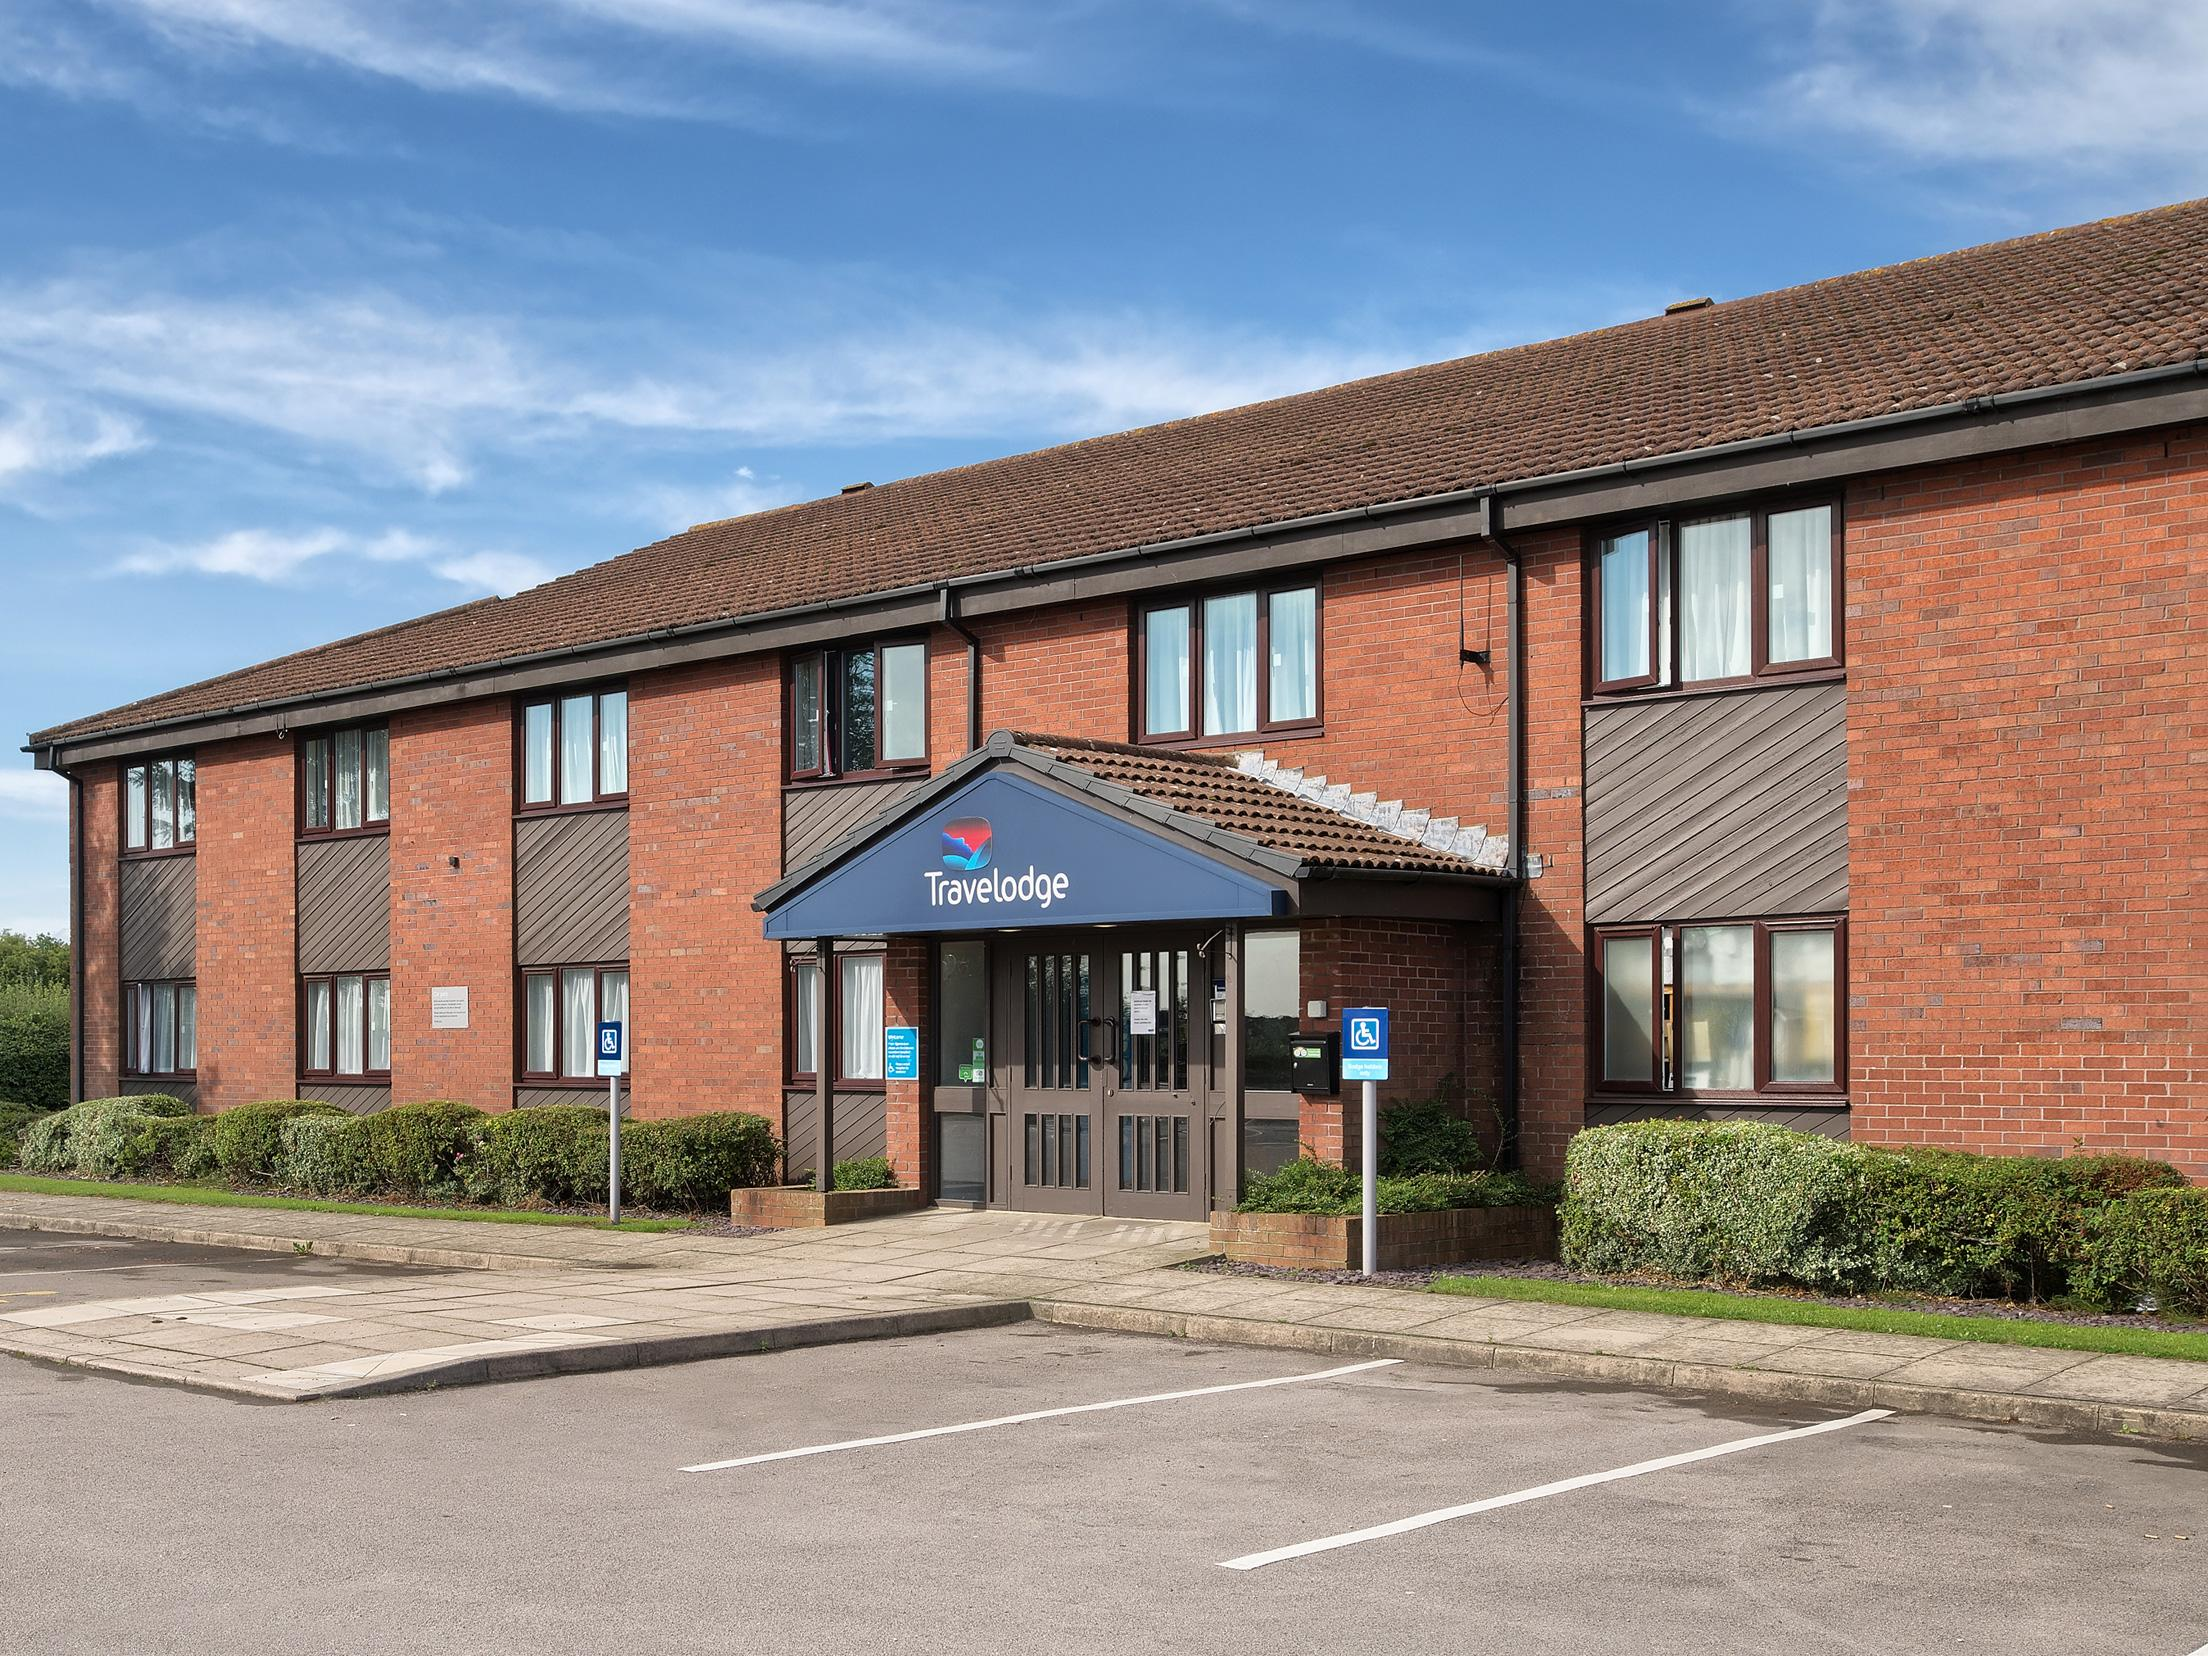 Travelodge Grantham South Witham, Lincolnshire